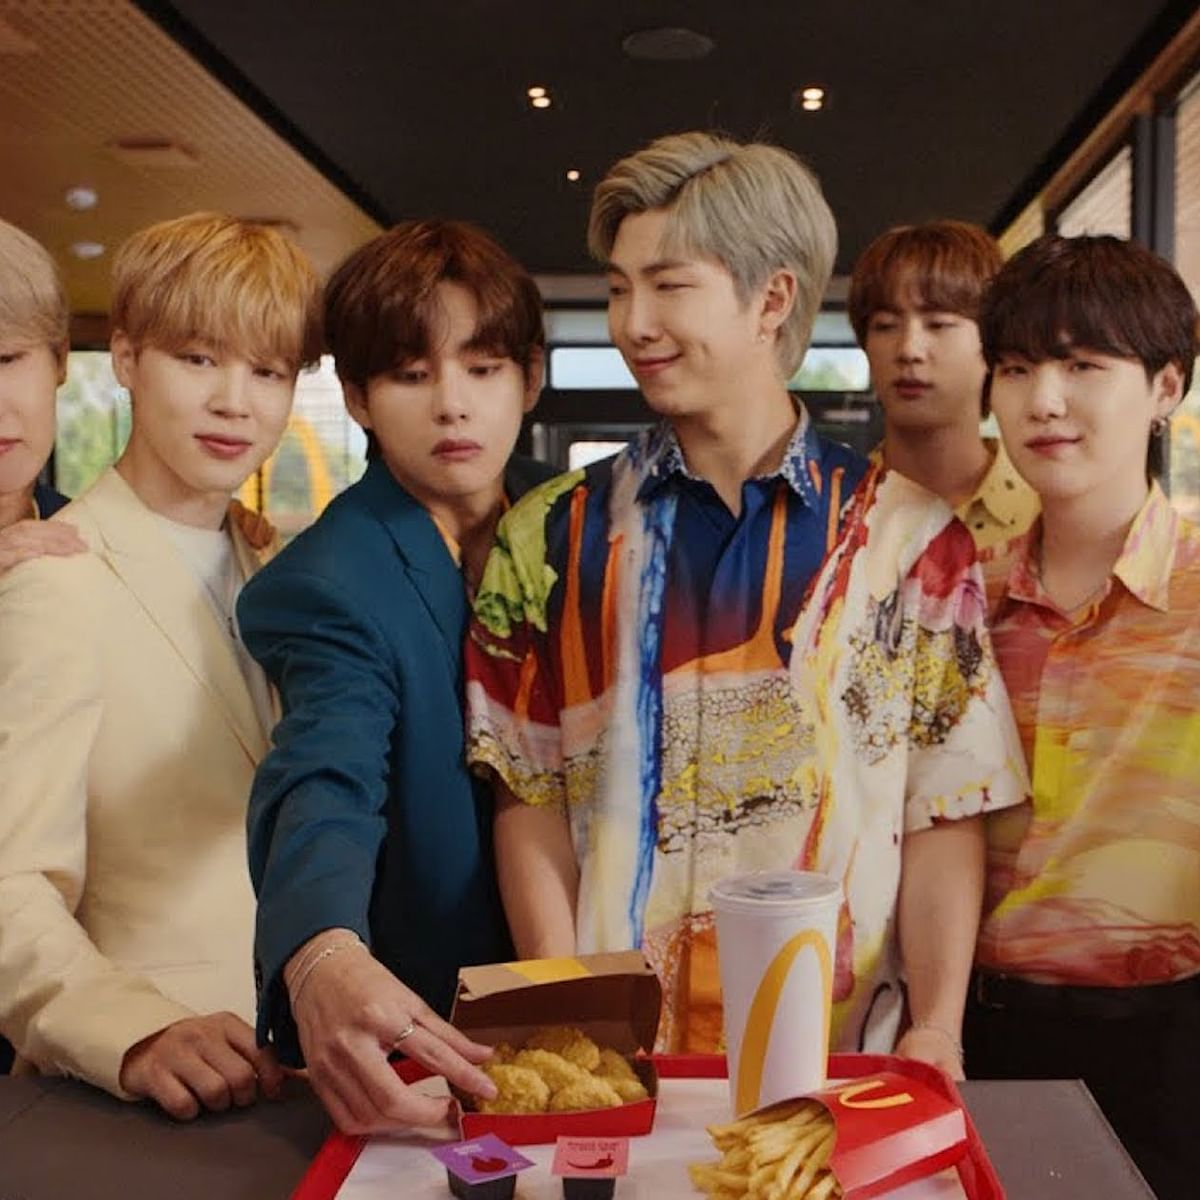 K-pop boy band BTS help McDonald's earn more than Rs 16,000 crore profit with its special meal